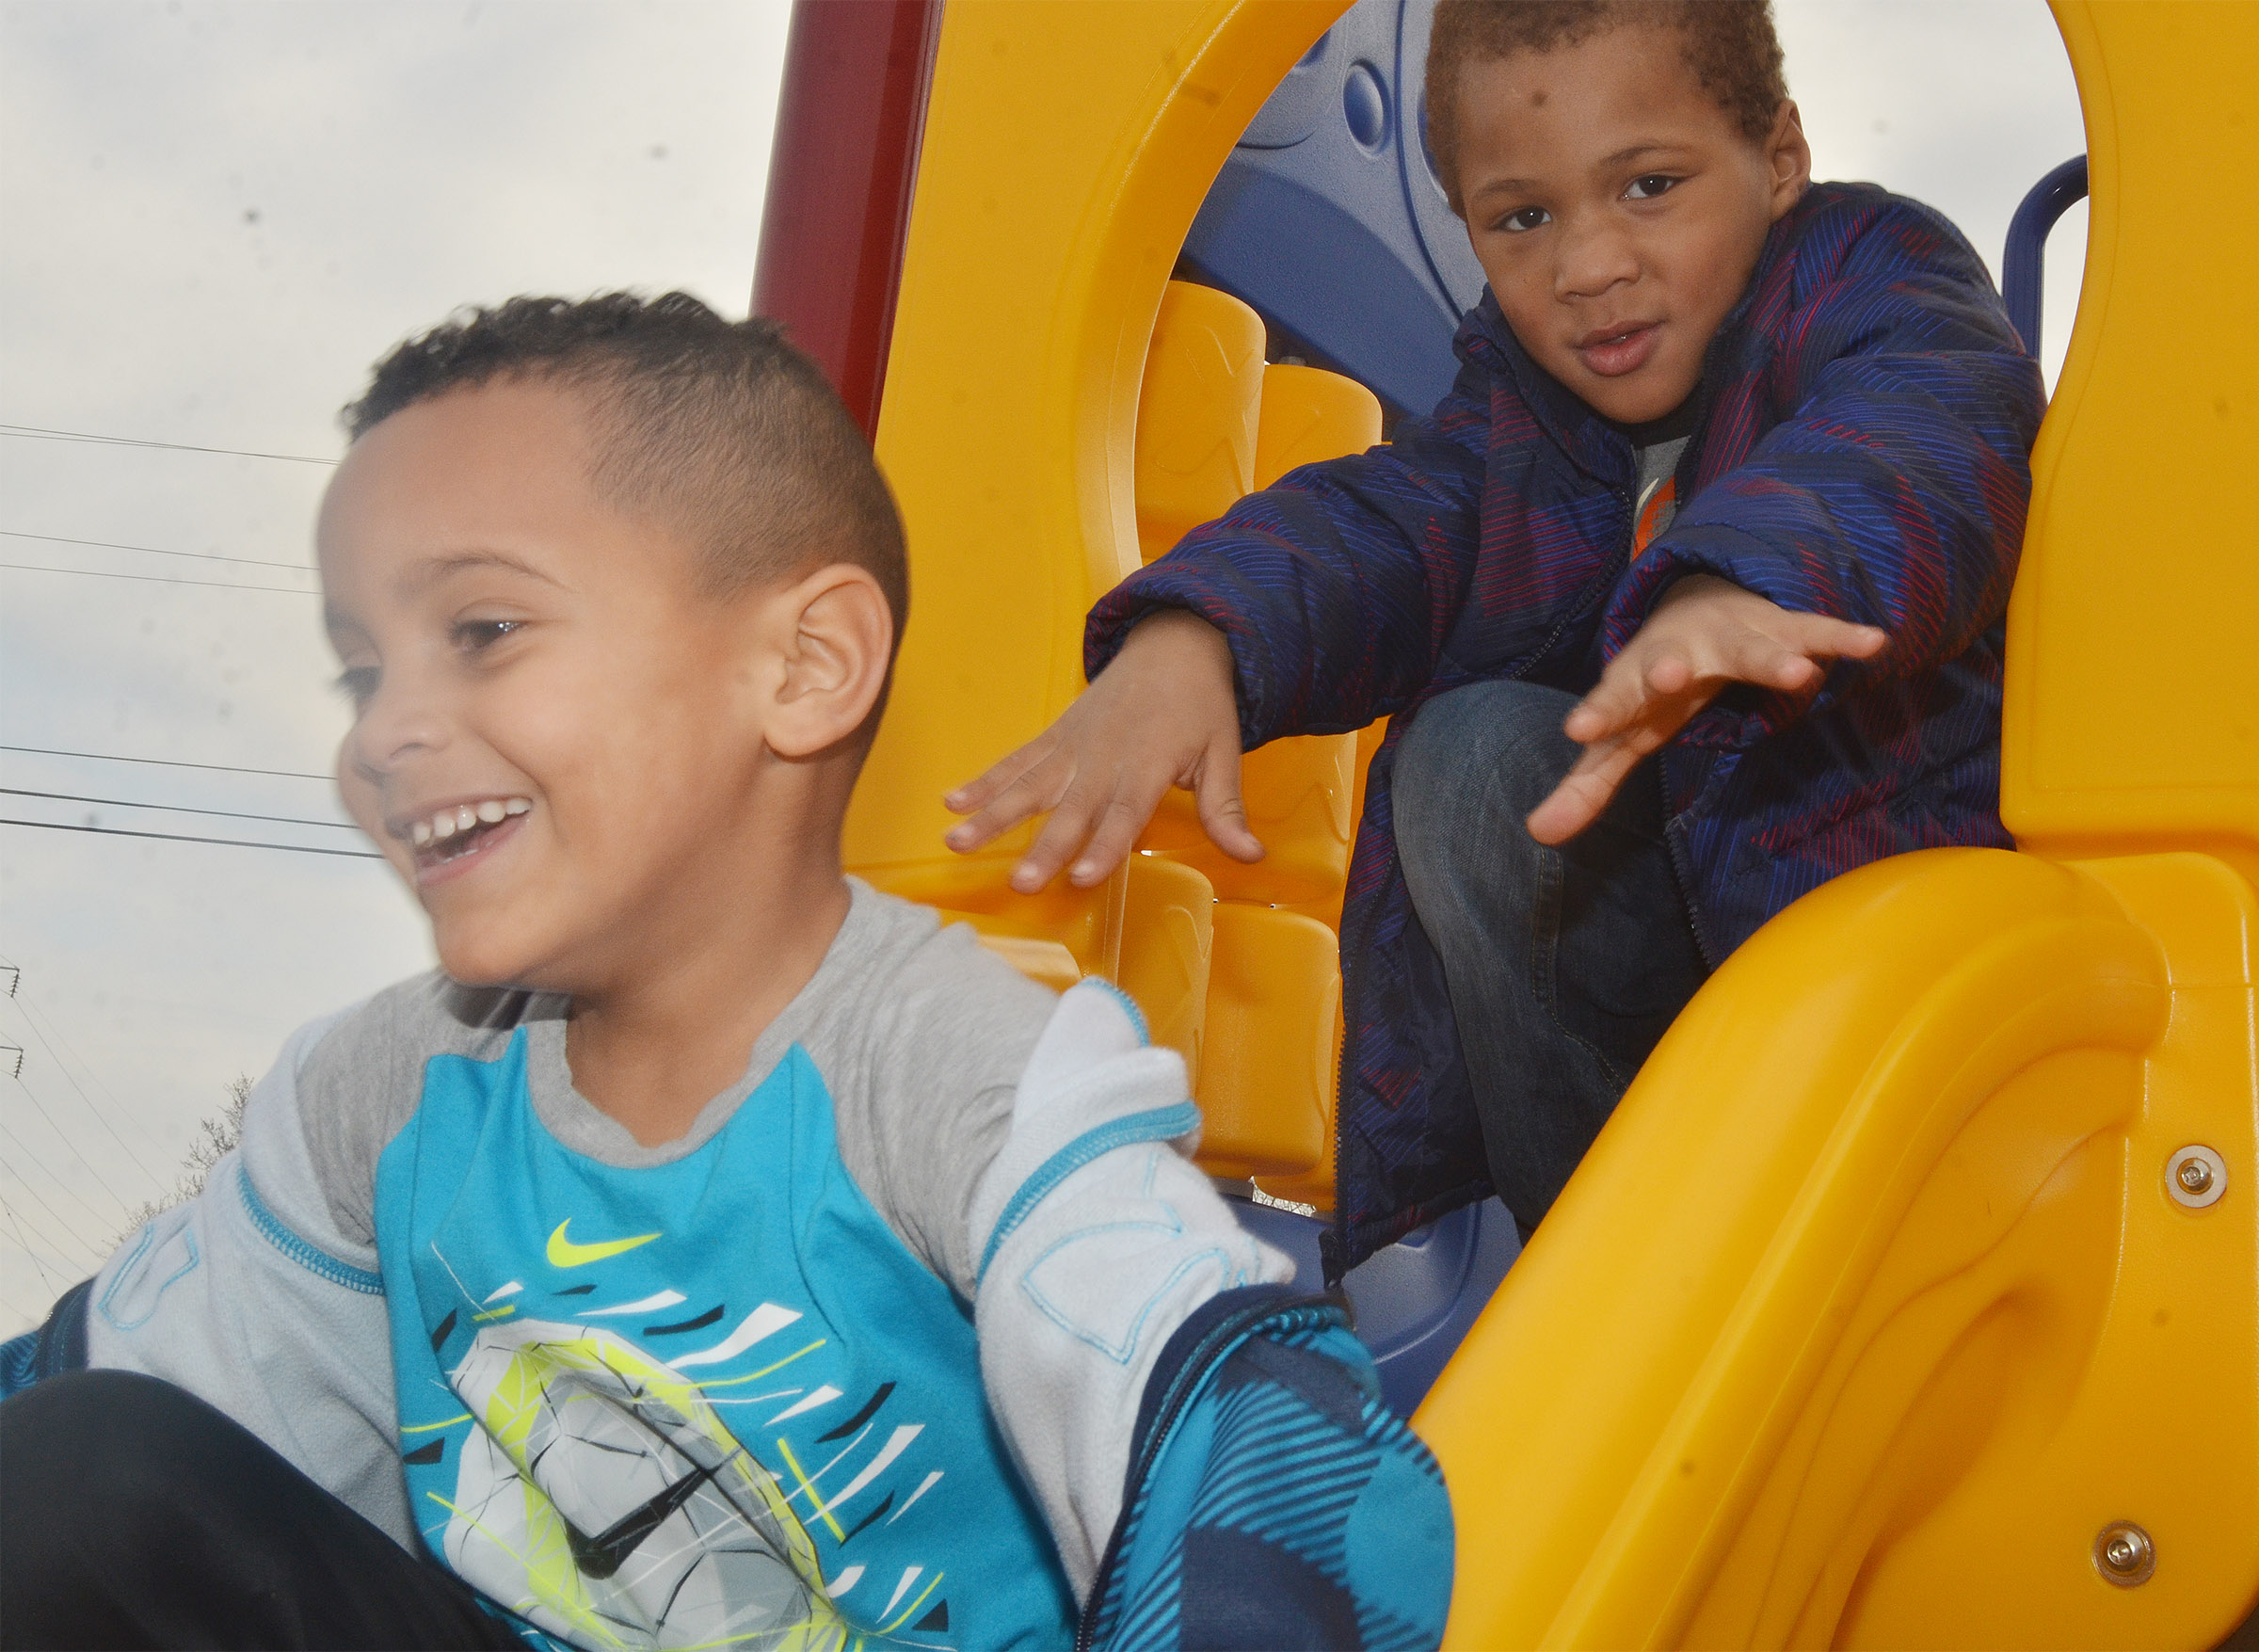 CES preschool student Kingstown Cowherd slides down the slide as Jamerius Miller waits his turn, as they and their classmates enjoy some playground time.